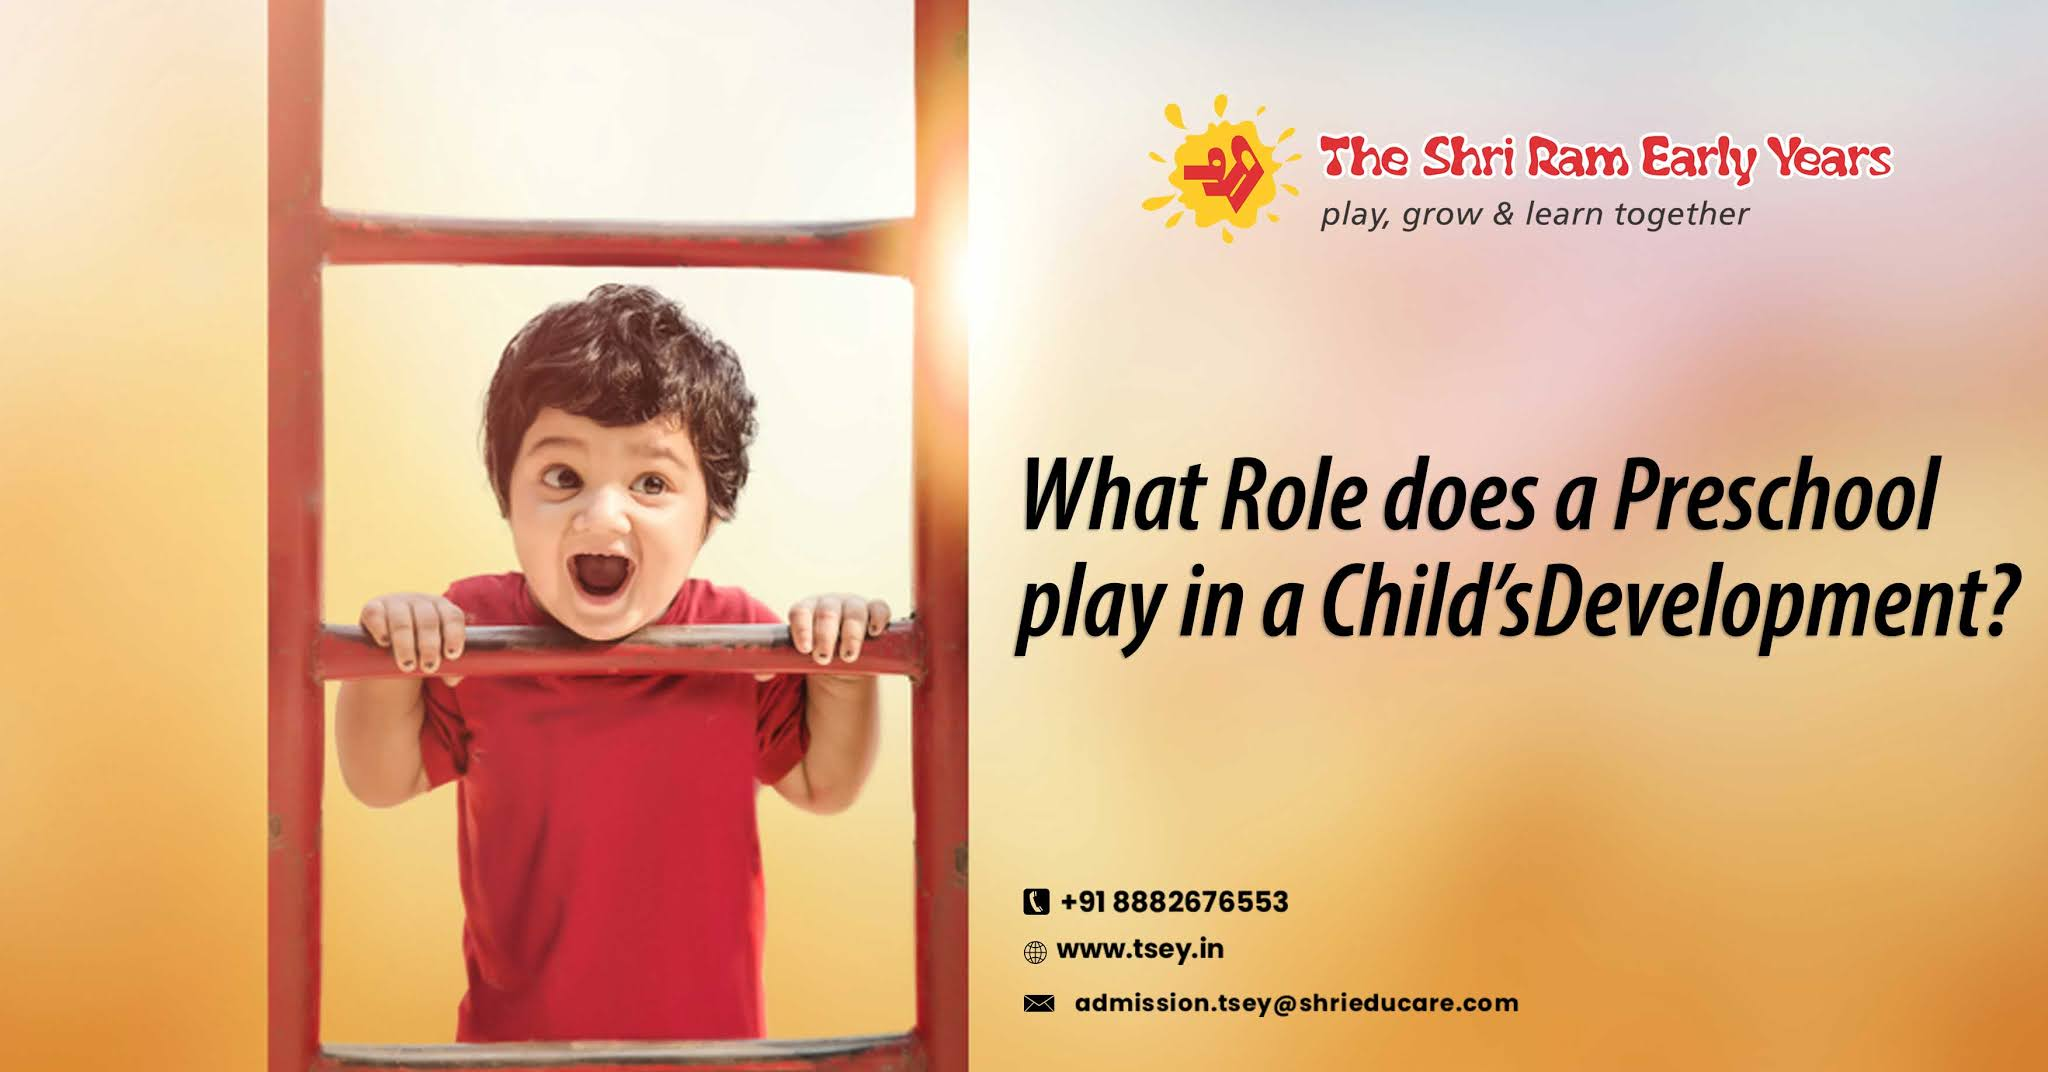 What Role does a Preschool play in a Child's Development?